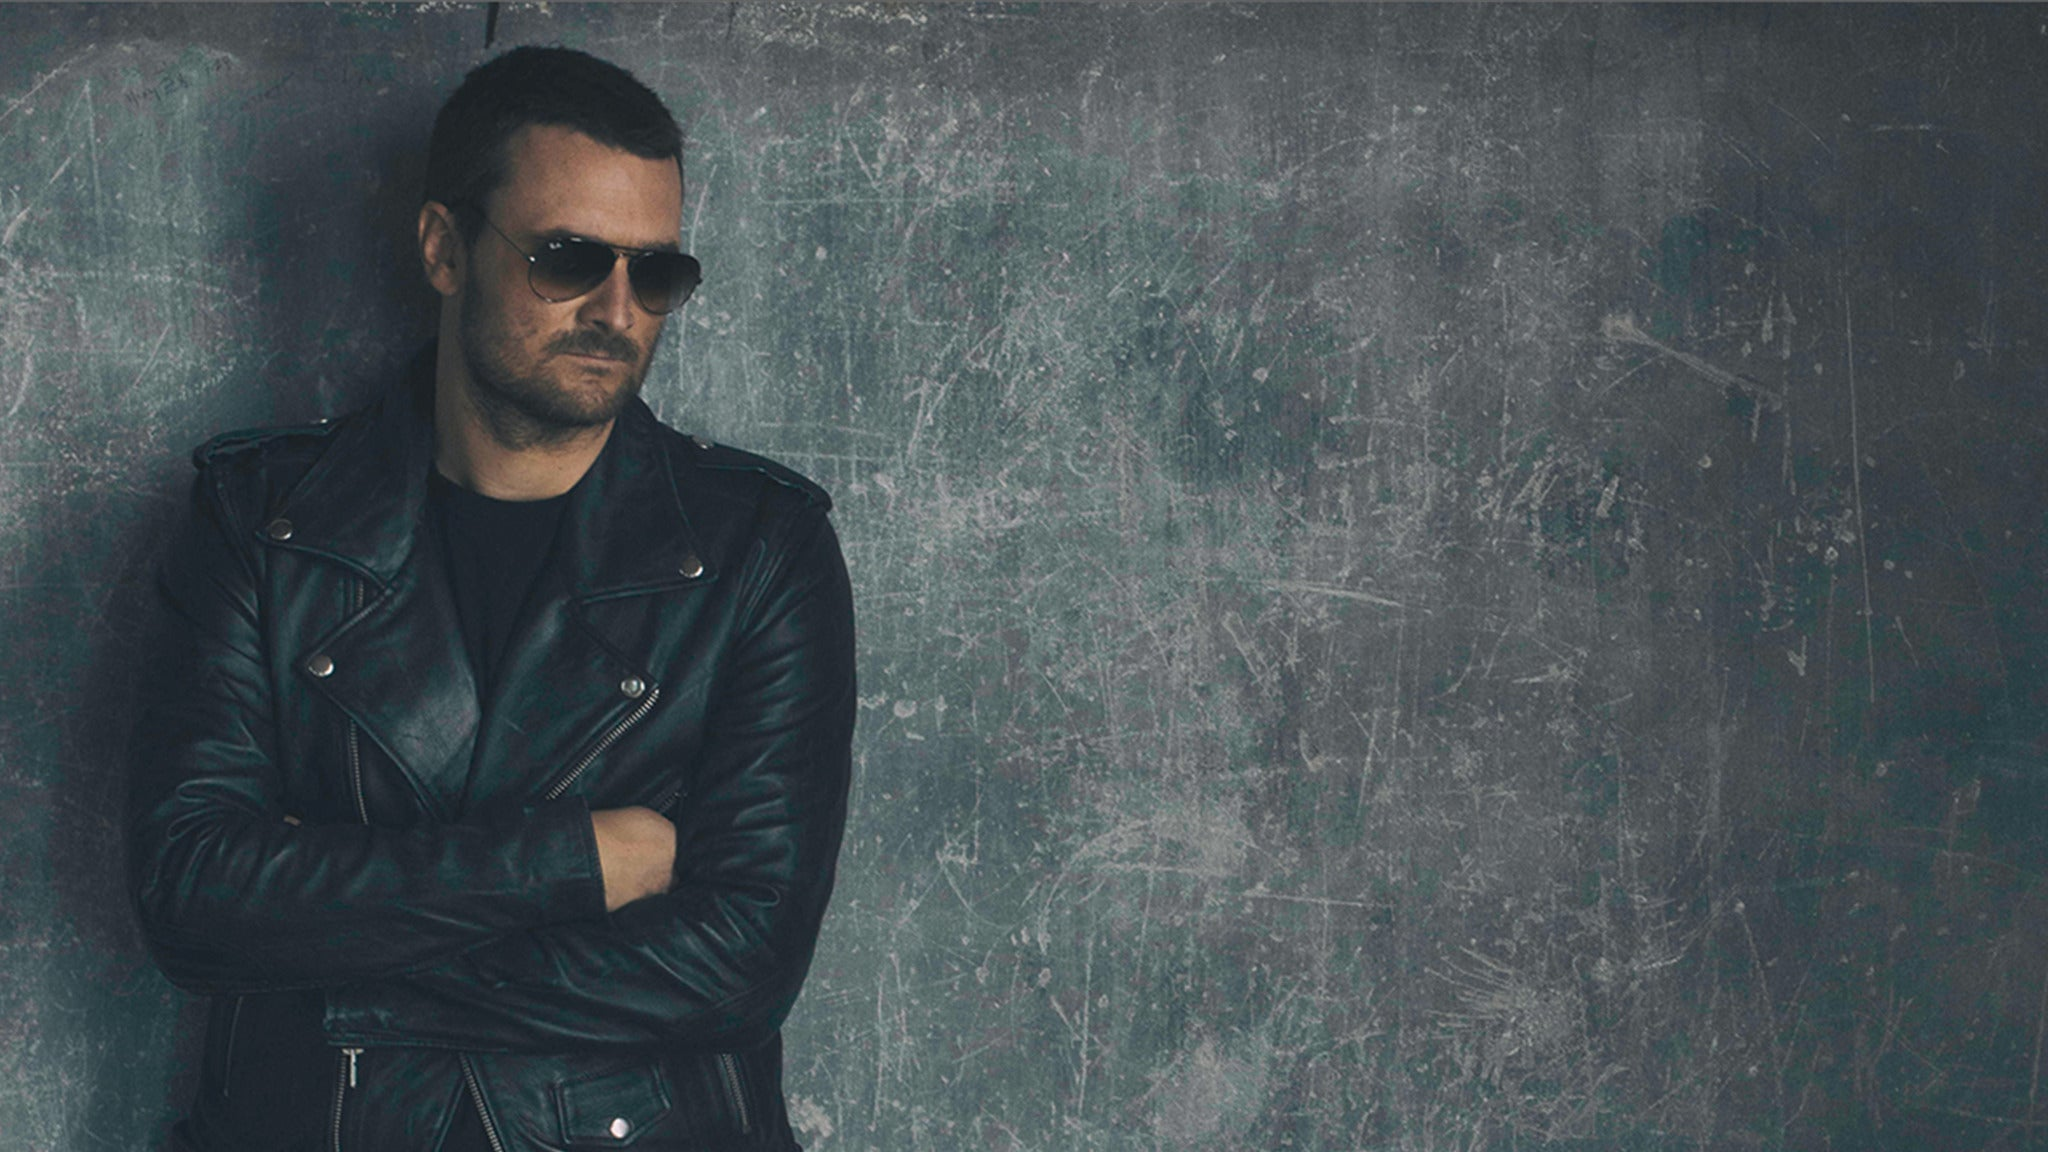 SORRY, THIS EVENT IS NO LONGER ACTIVE<br>Eric Church - Holdin' My Own Tour at Golden 1 Center - Sacramento, CA 95814